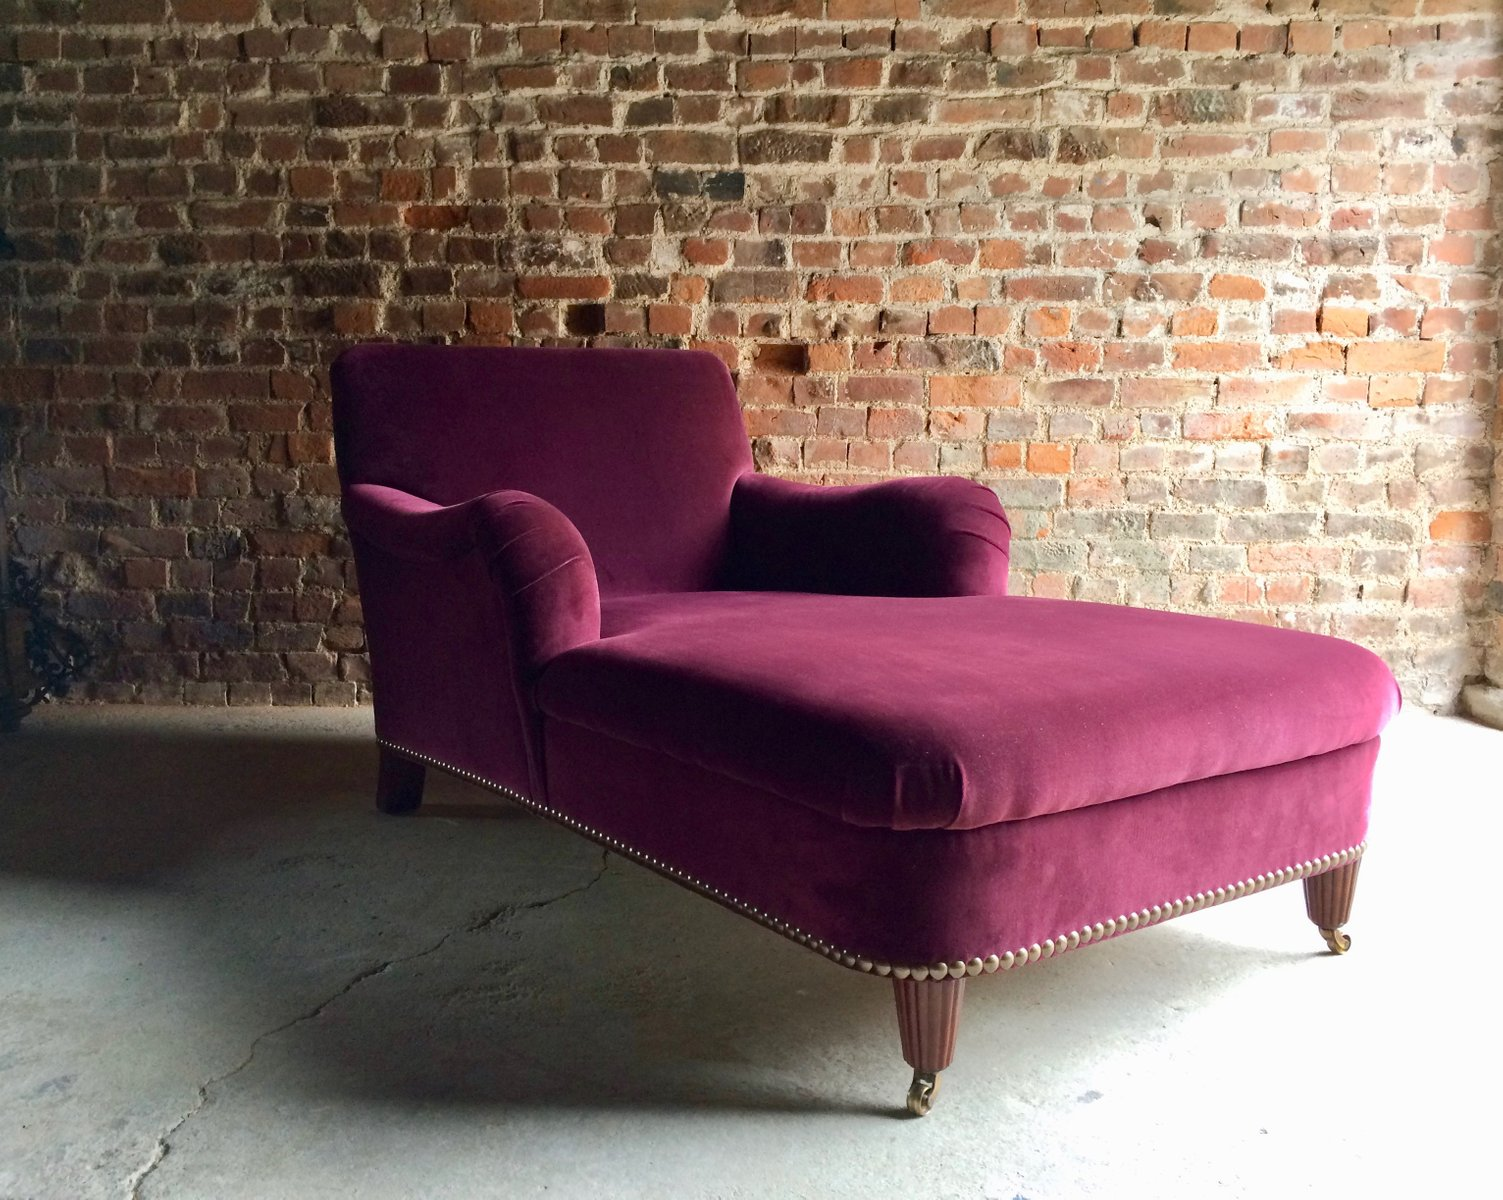 Bohemian Chaise Longue Sofa by Ralph Lauren 2000s for sale at Pamono